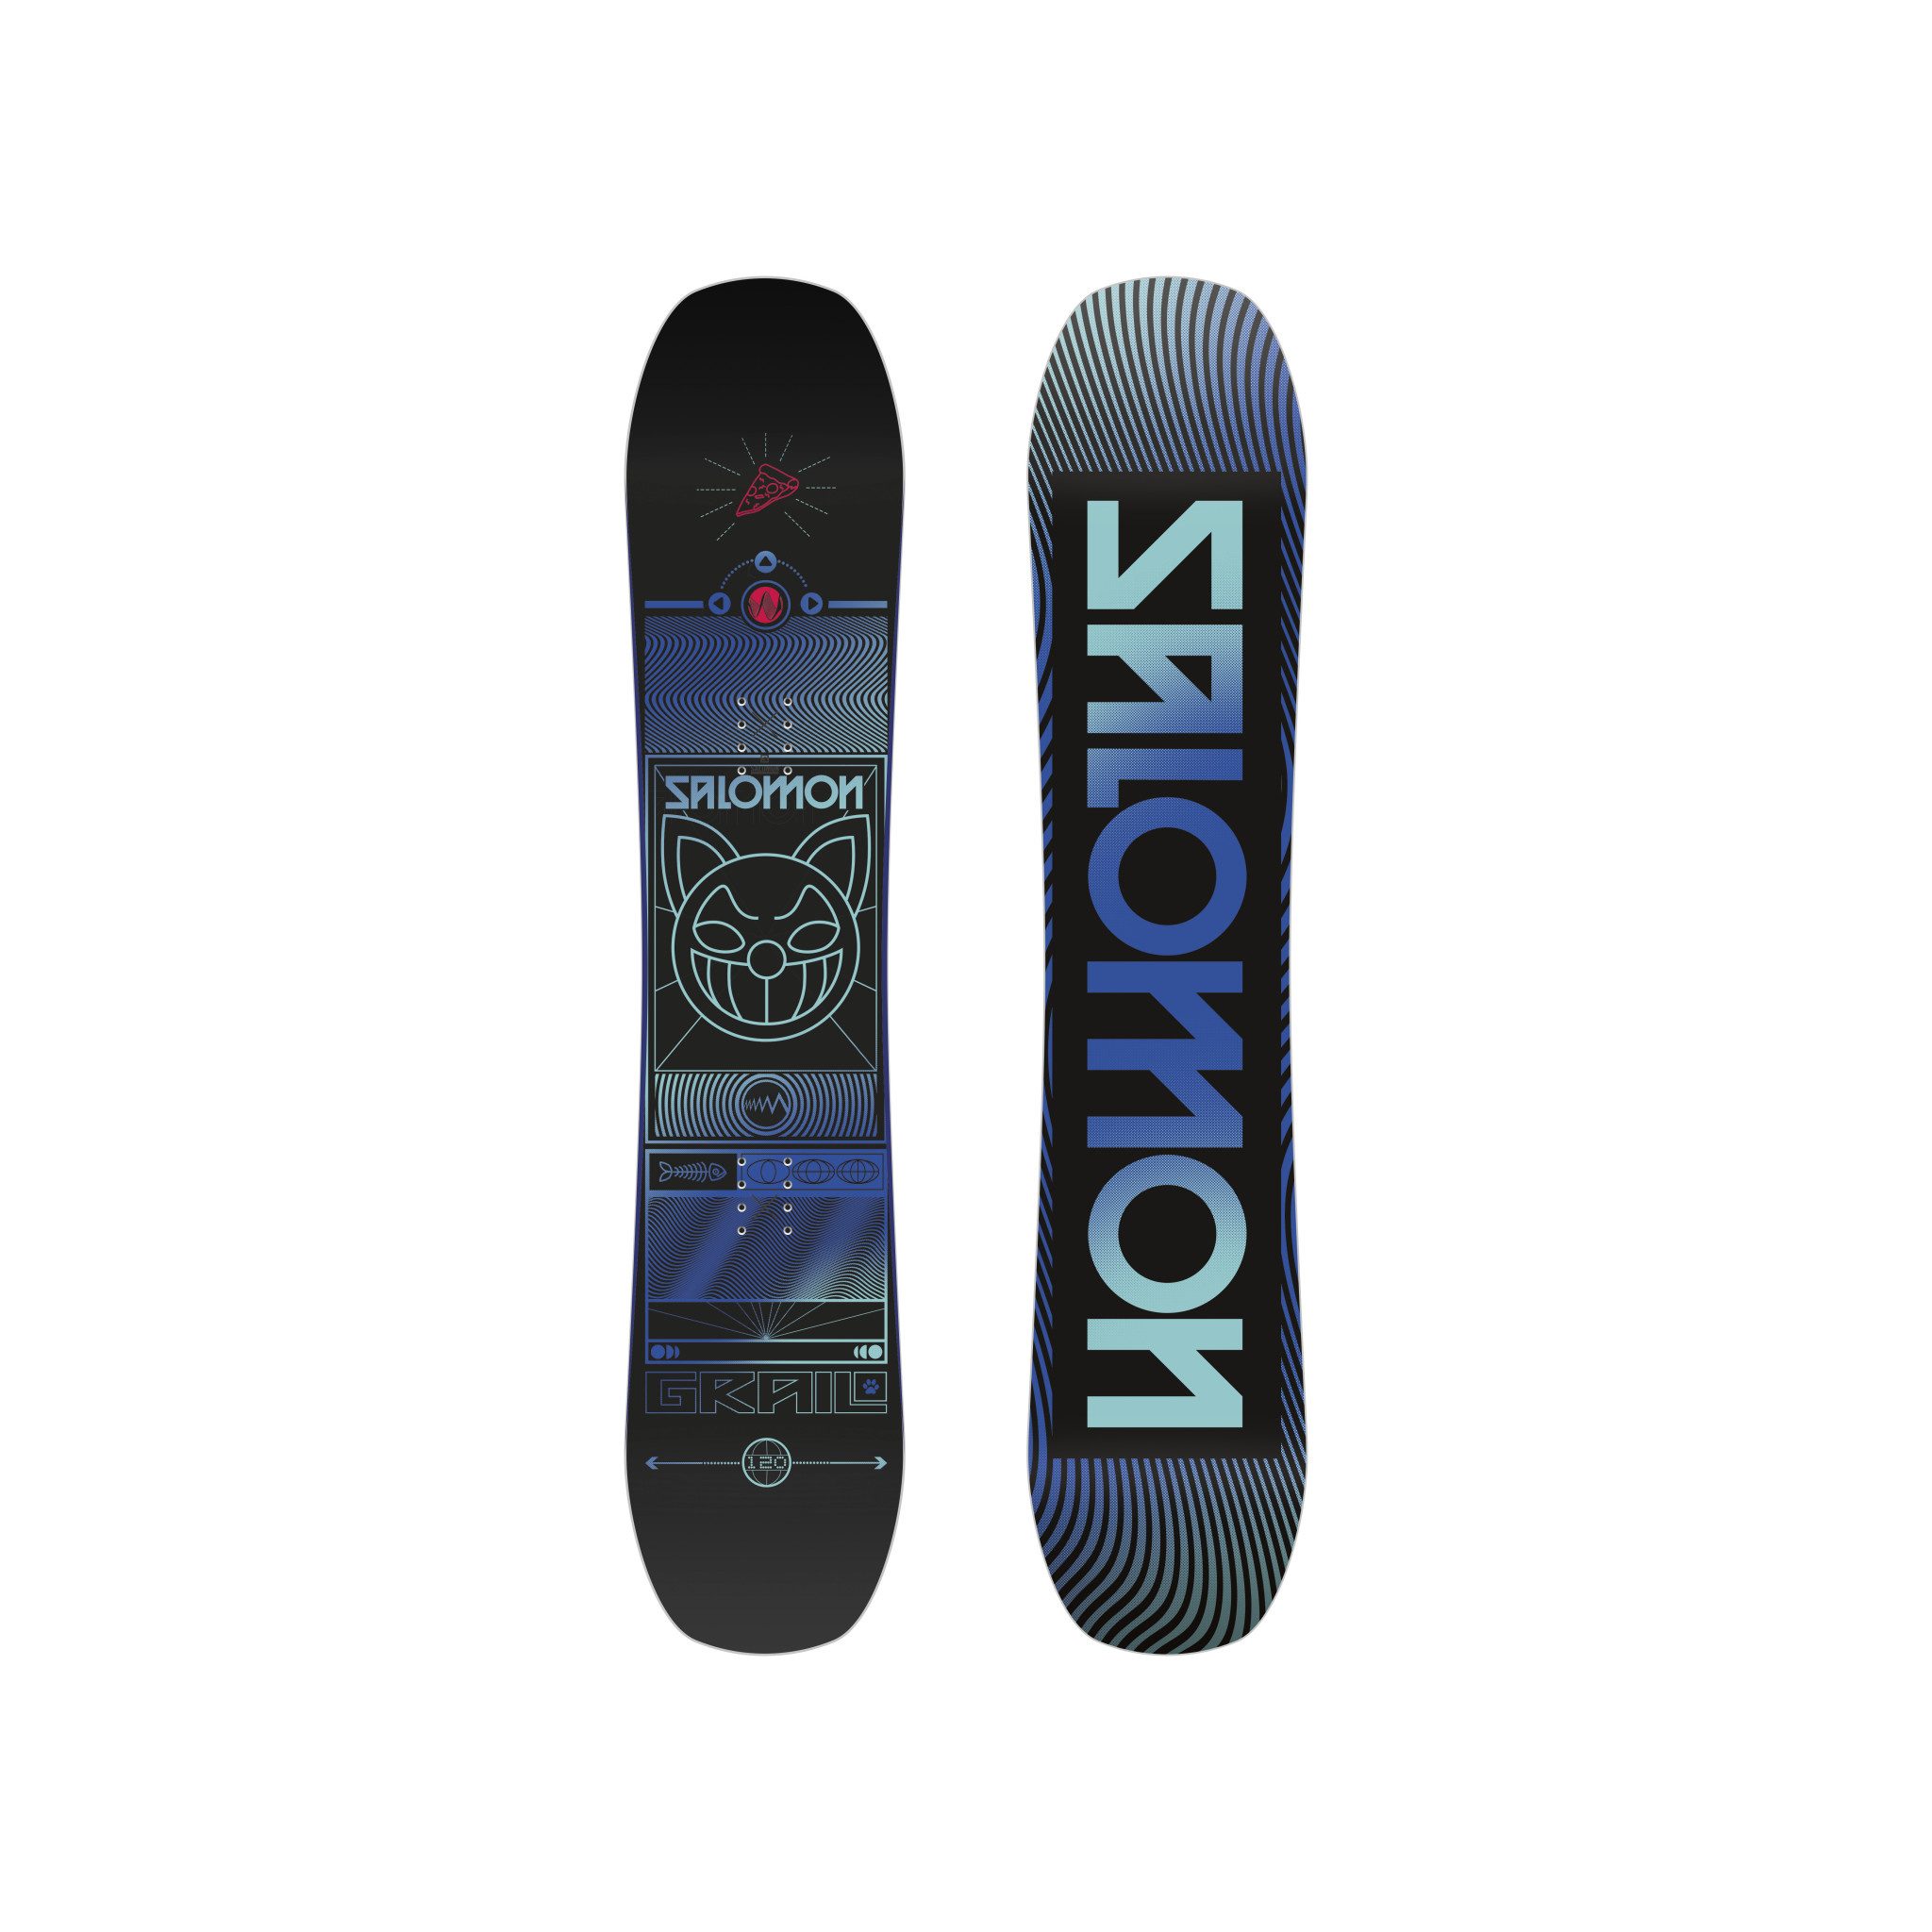 SALOMON Salomon Boys Grail Snowboard (2021)